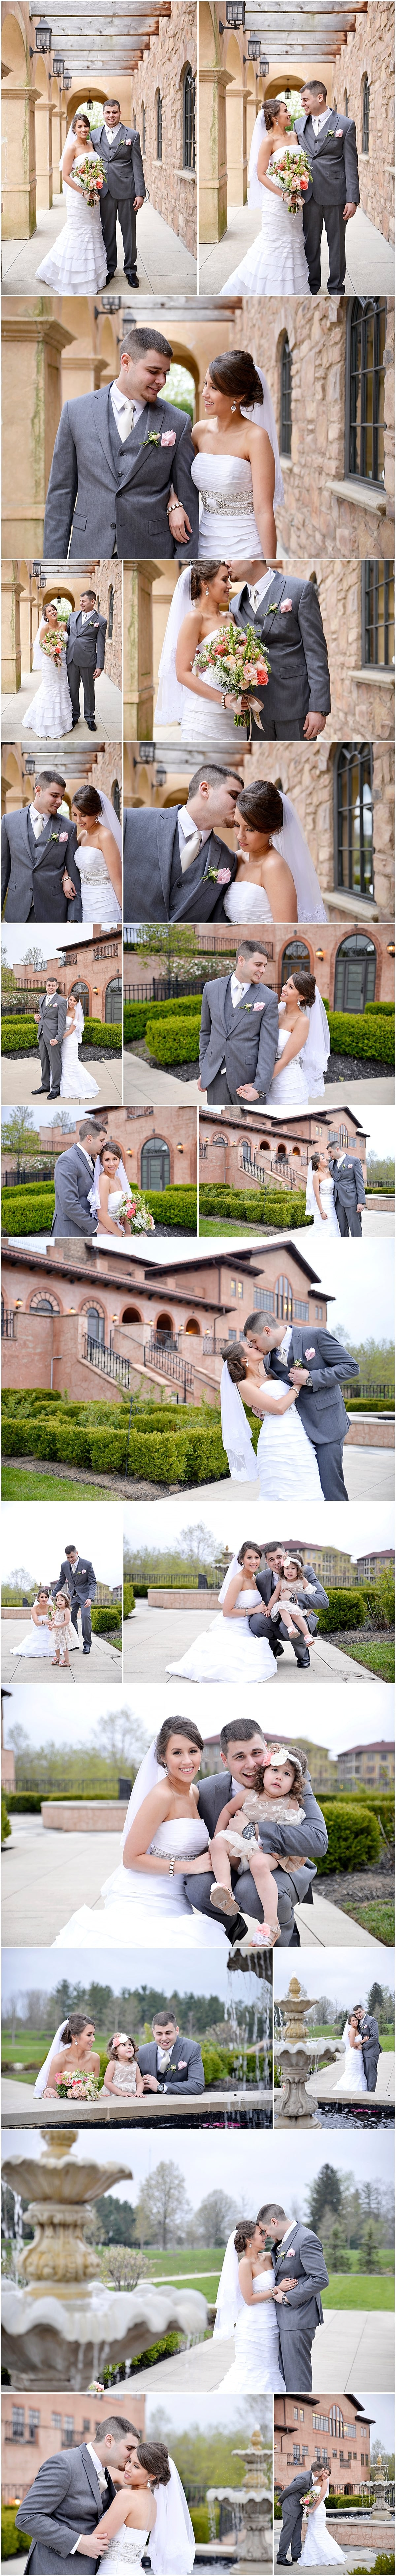 Wedding photography columbus Ohio